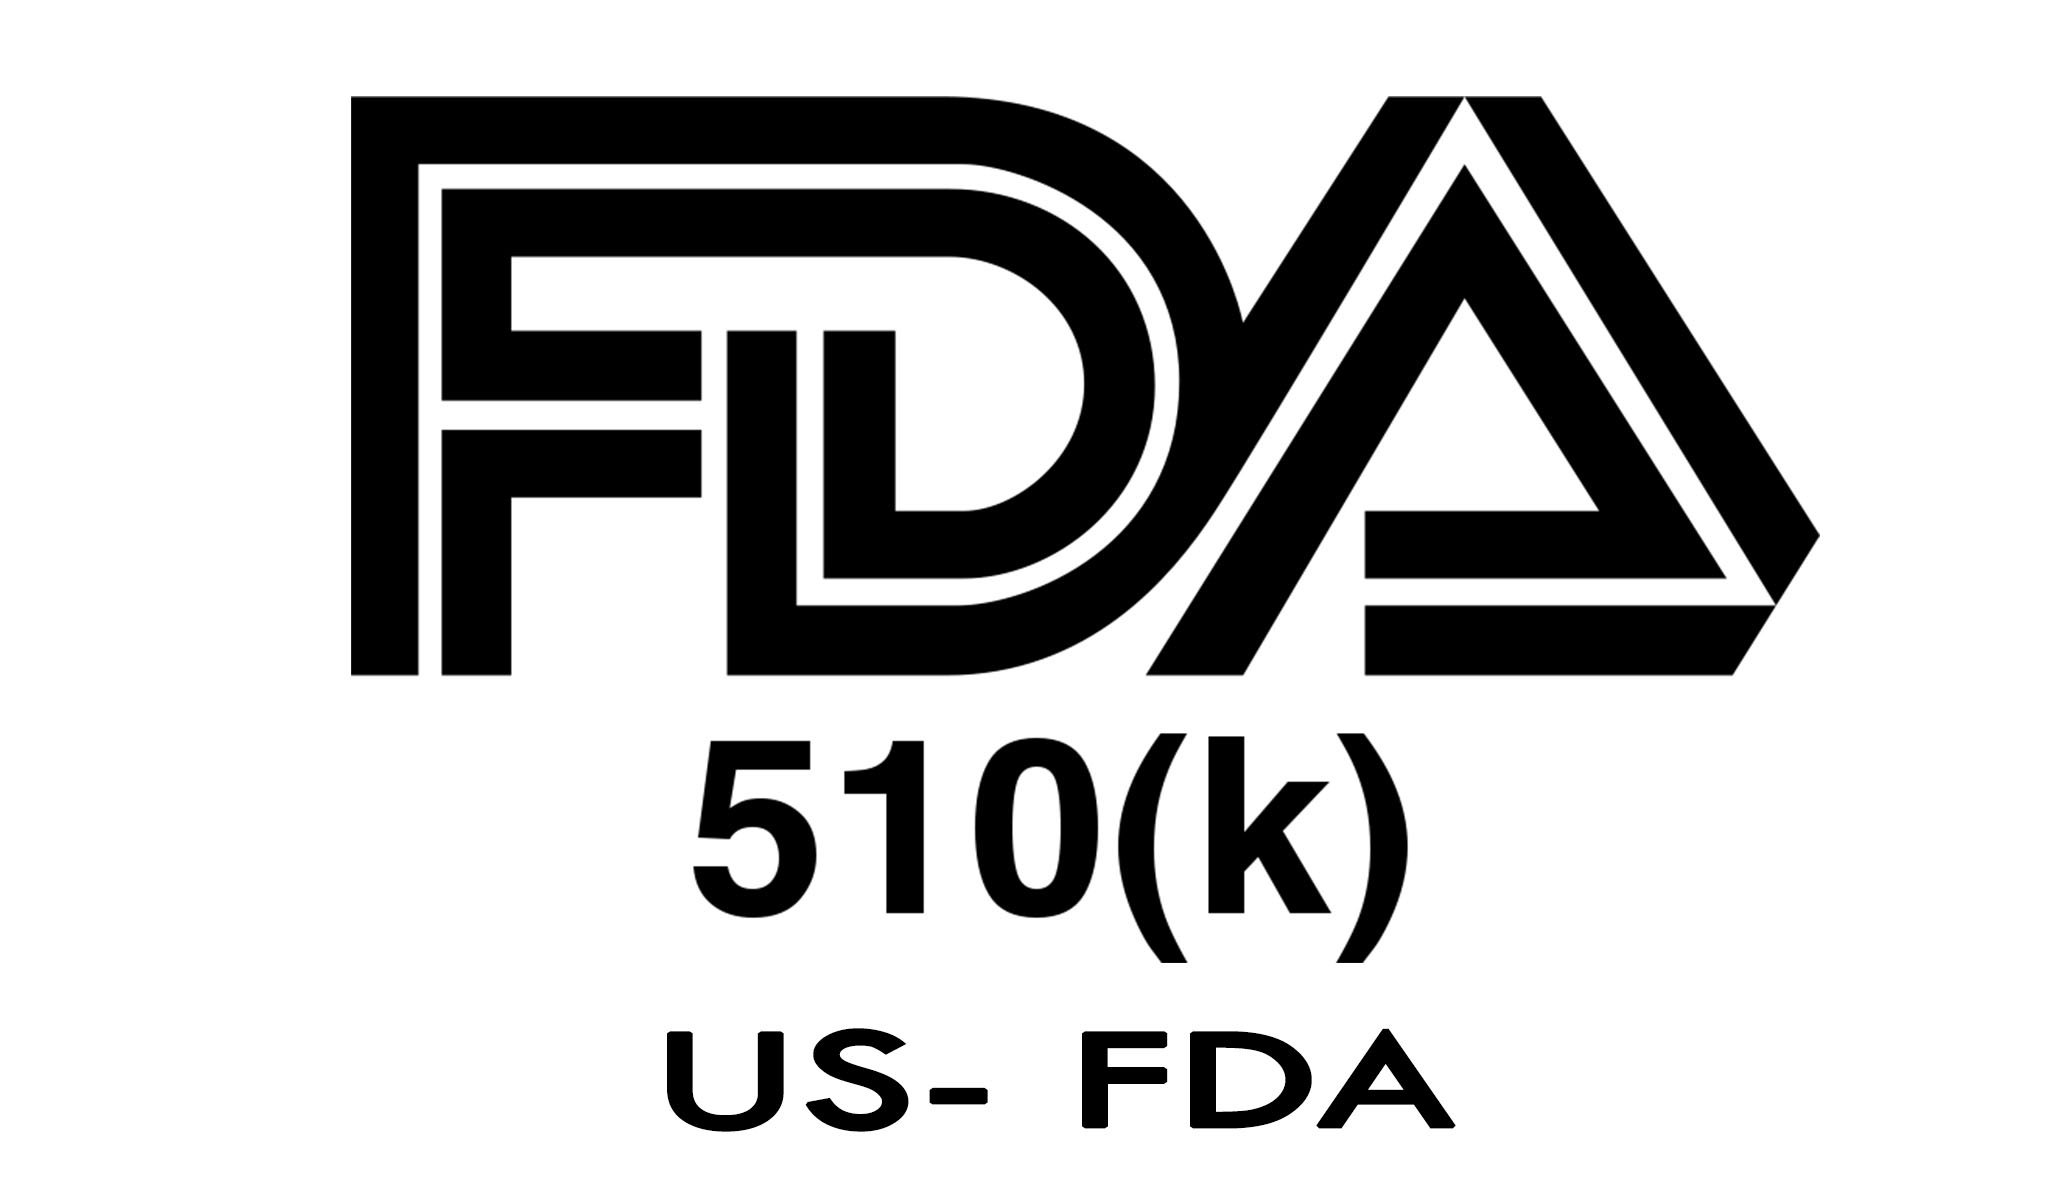 Fda Regulates The Sale Of Medical Devices There Are Different Regulatory Controls For Devices Of Different Cl Es For Cli Devices Some 510k